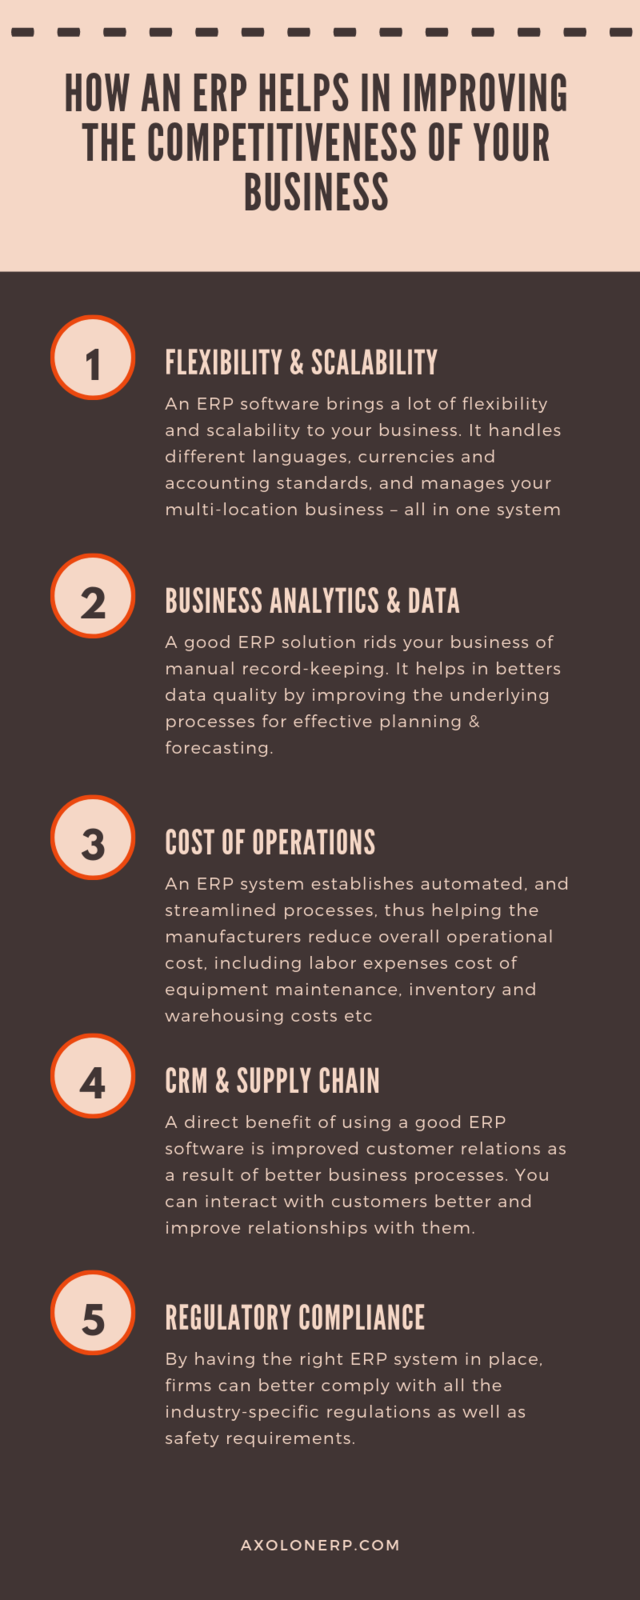 How an erp helps in improving the competitiveness of your business